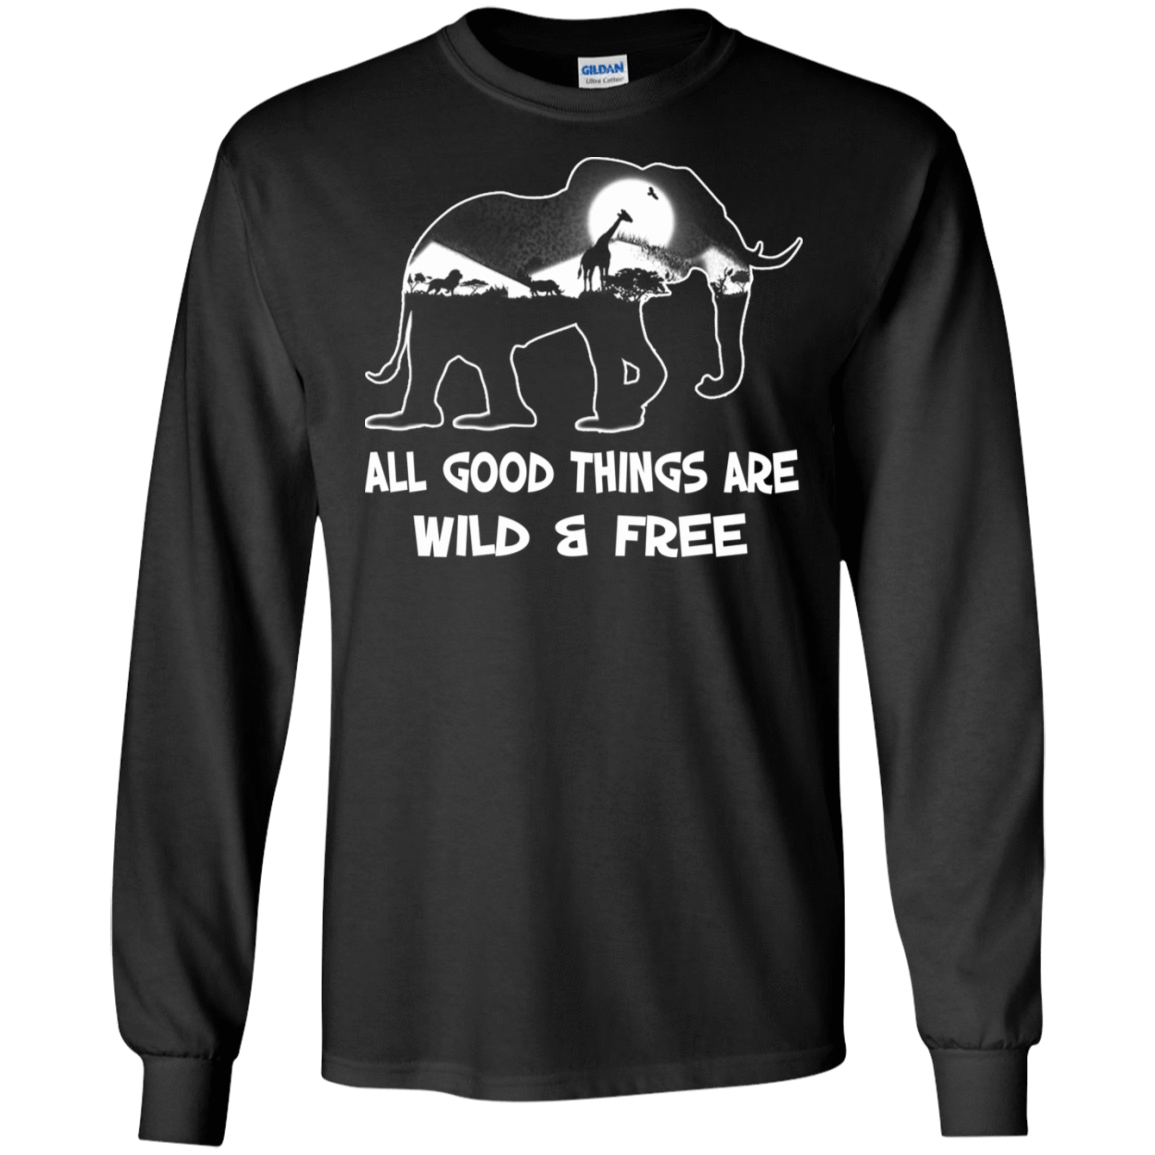 All Good Things Are Wild & Free 30-186-72772259-333 - Tee Ript